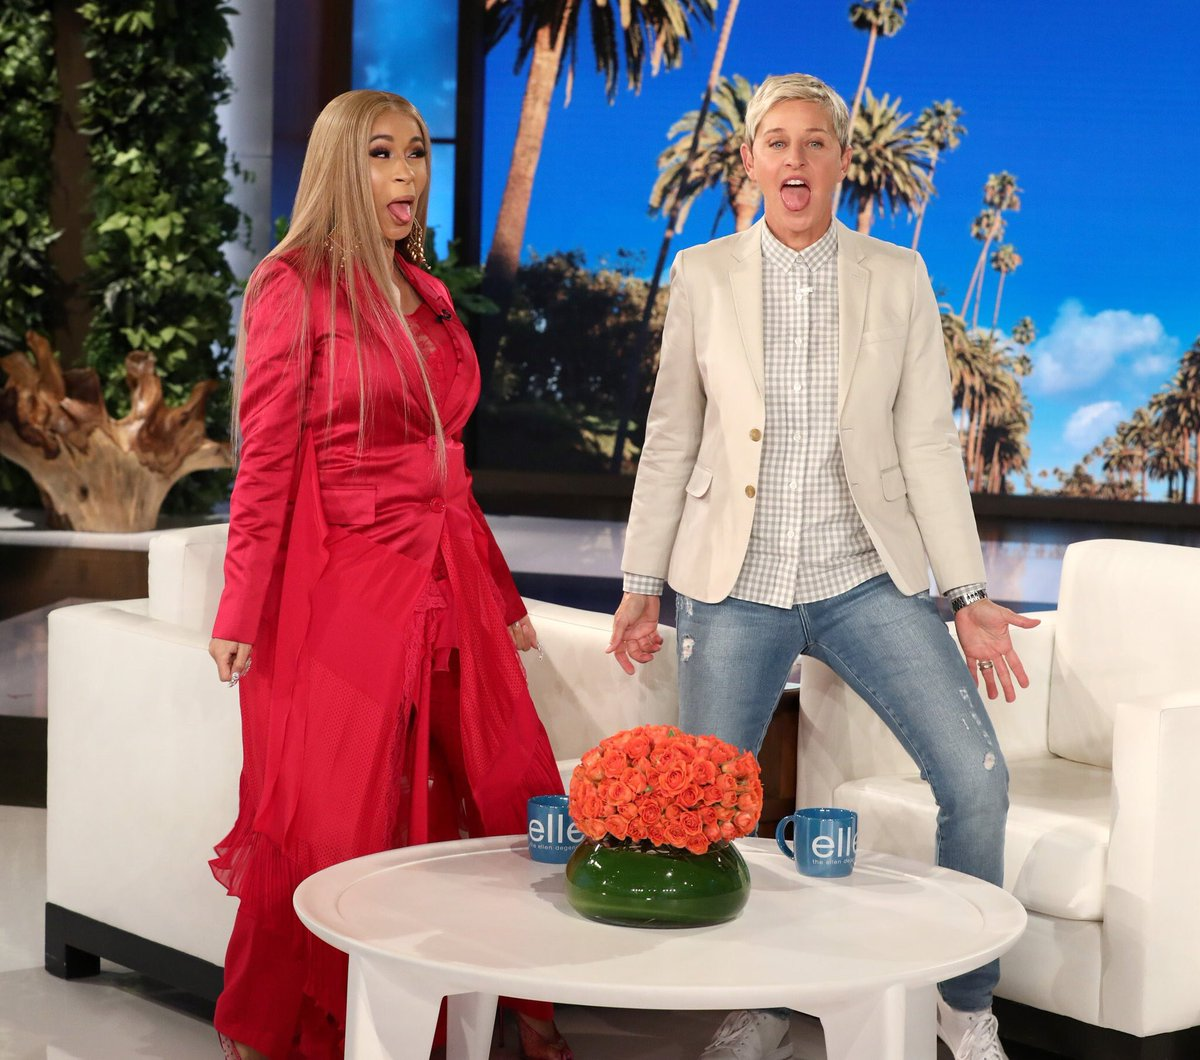 The promo run for #InvasionofPrivacy continues! Today, @iamcardib is a guest on @TheEllenShow! These are huge looks, people! She's out there working! #InvasionofPrivacy soundcloud.com/remindmetotell…